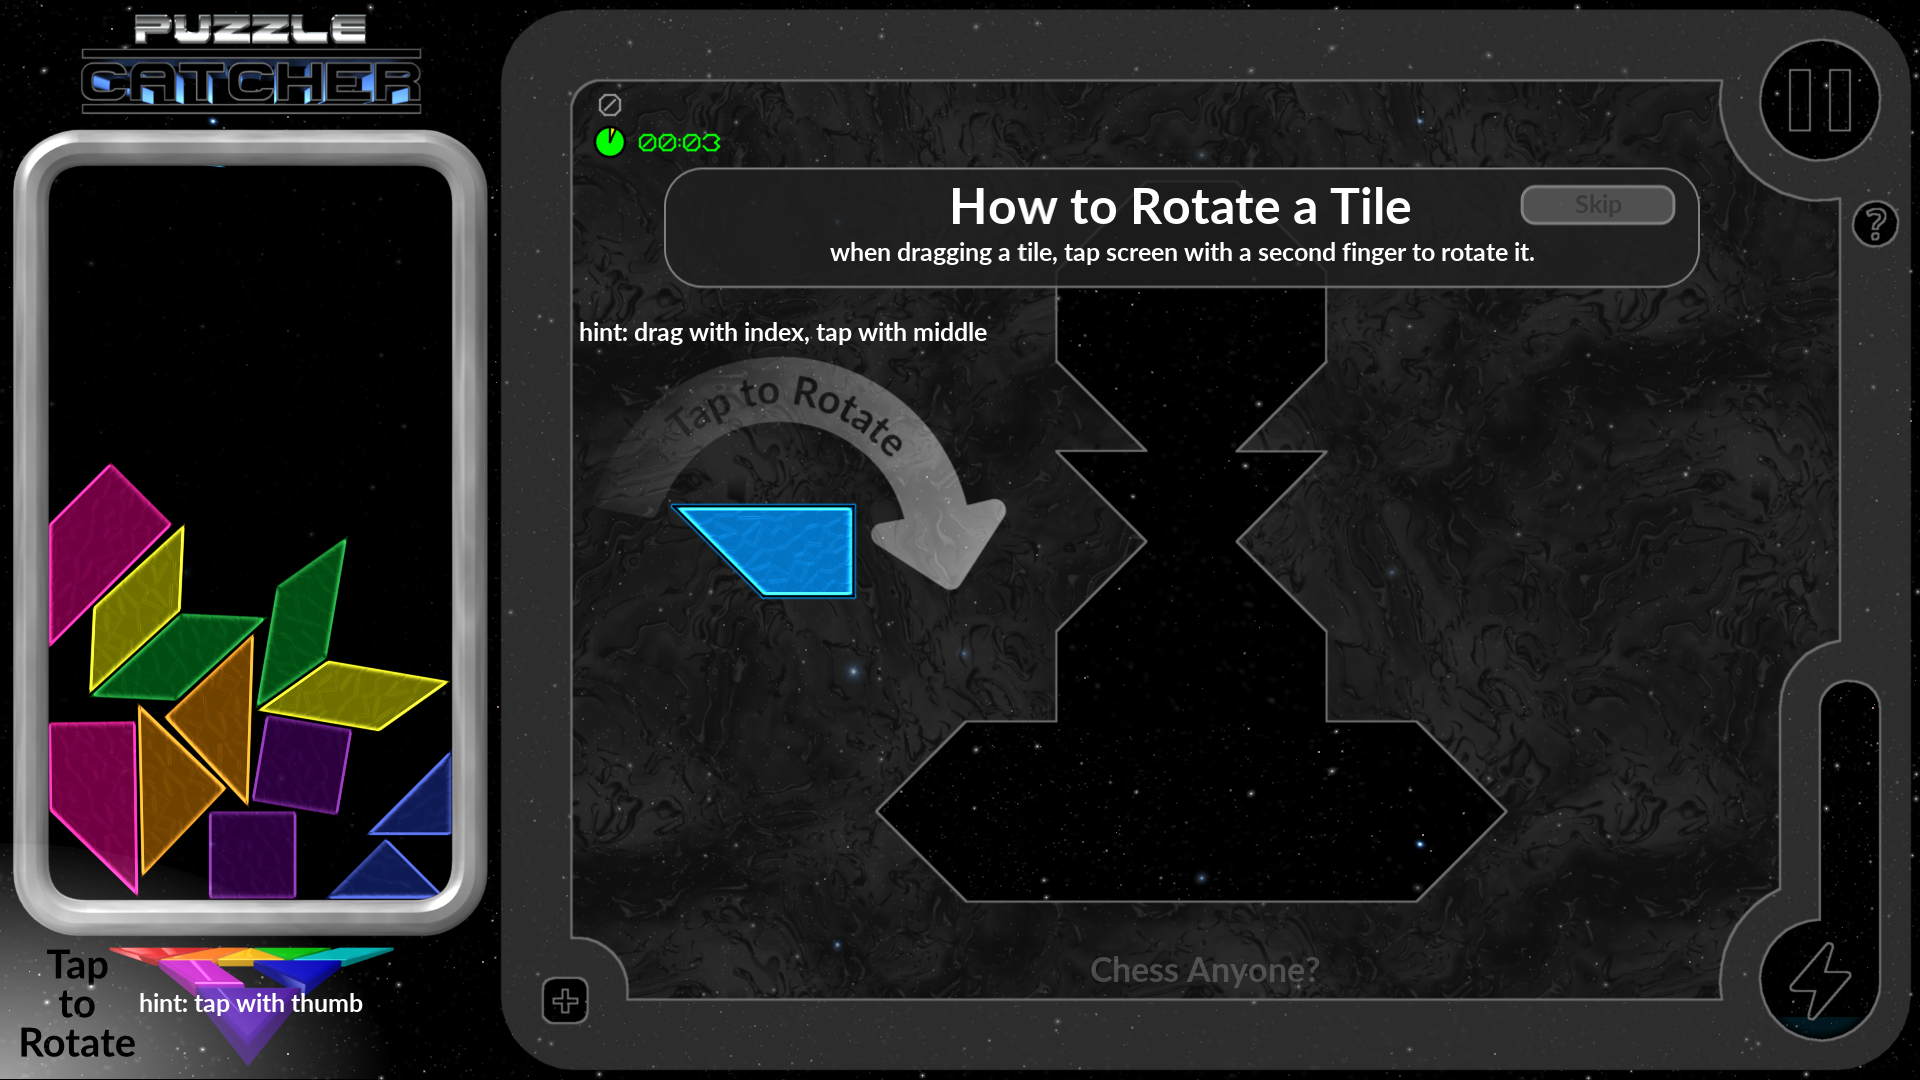 Tile Rotation Training - It Takes a Little Practice